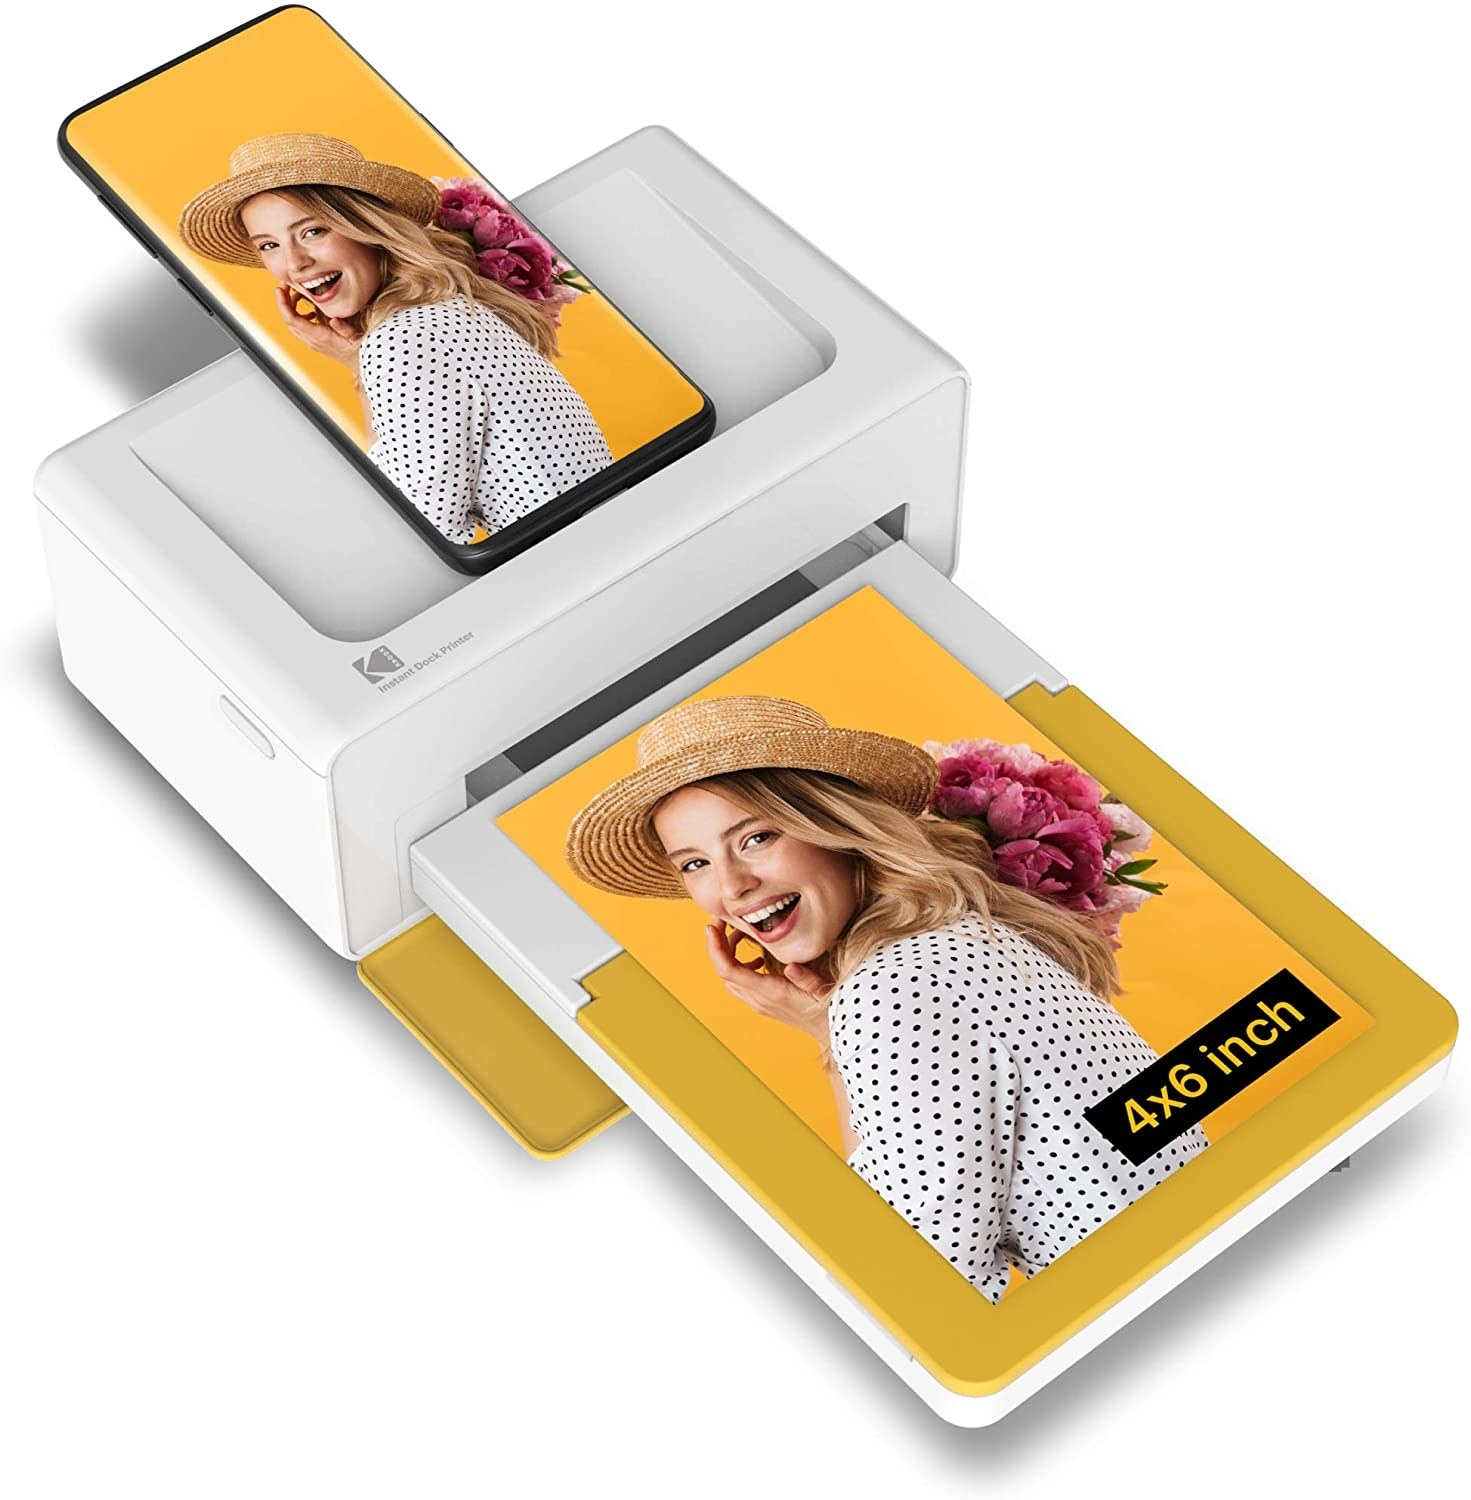 the device printing from an iPhone